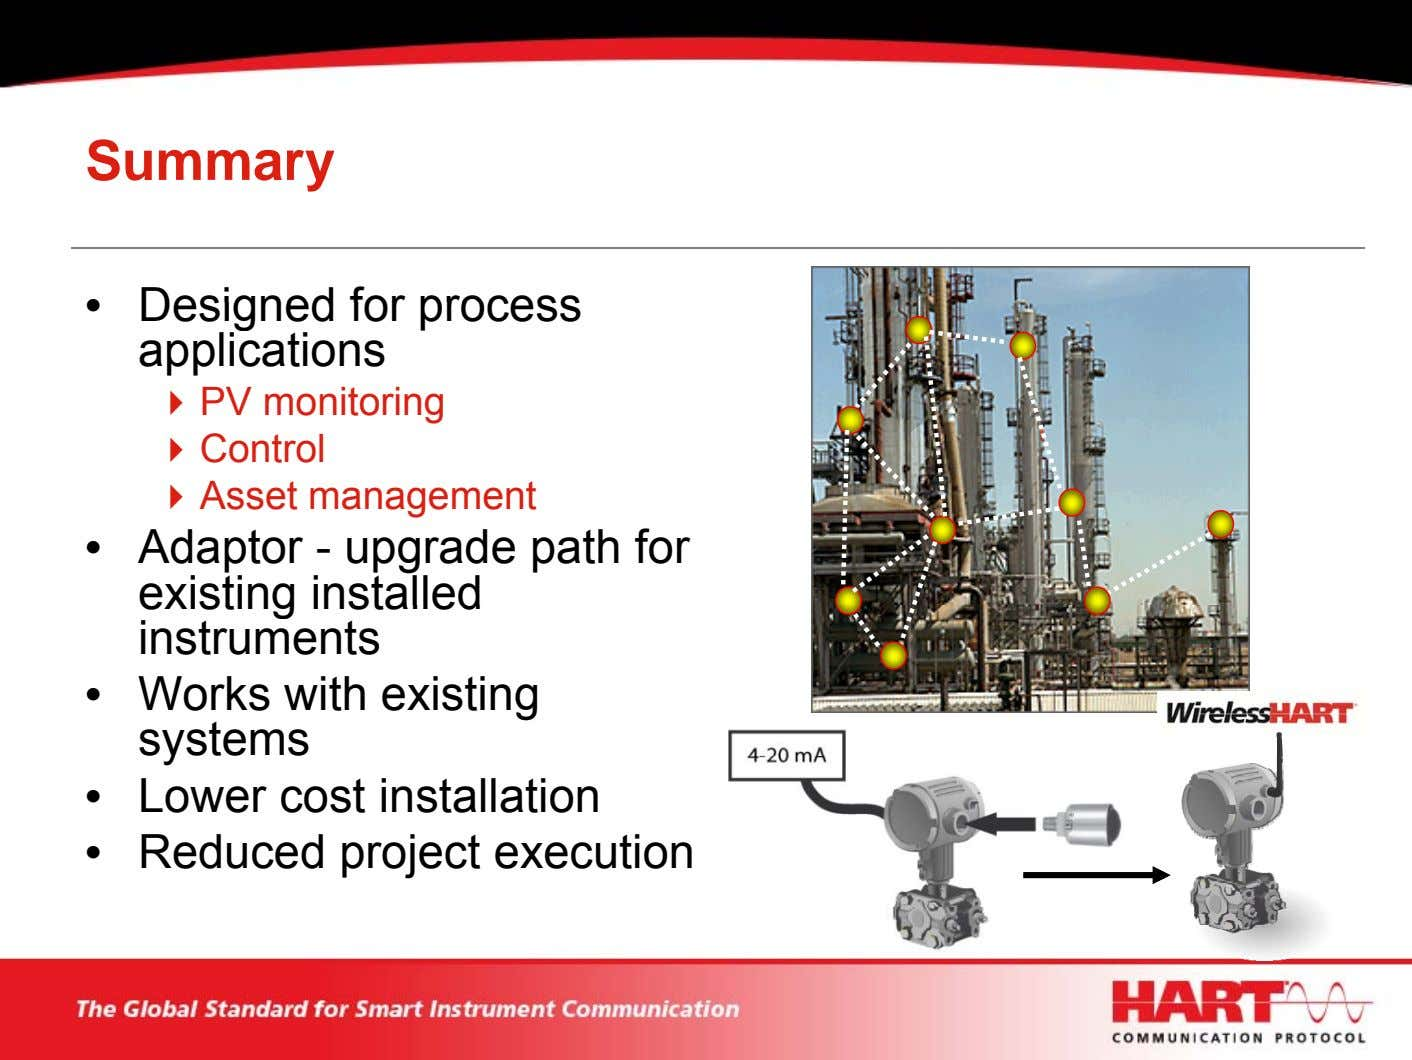 Summary • Designed for process applications PV monitoring Control Asset management • Adaptor - upgrade